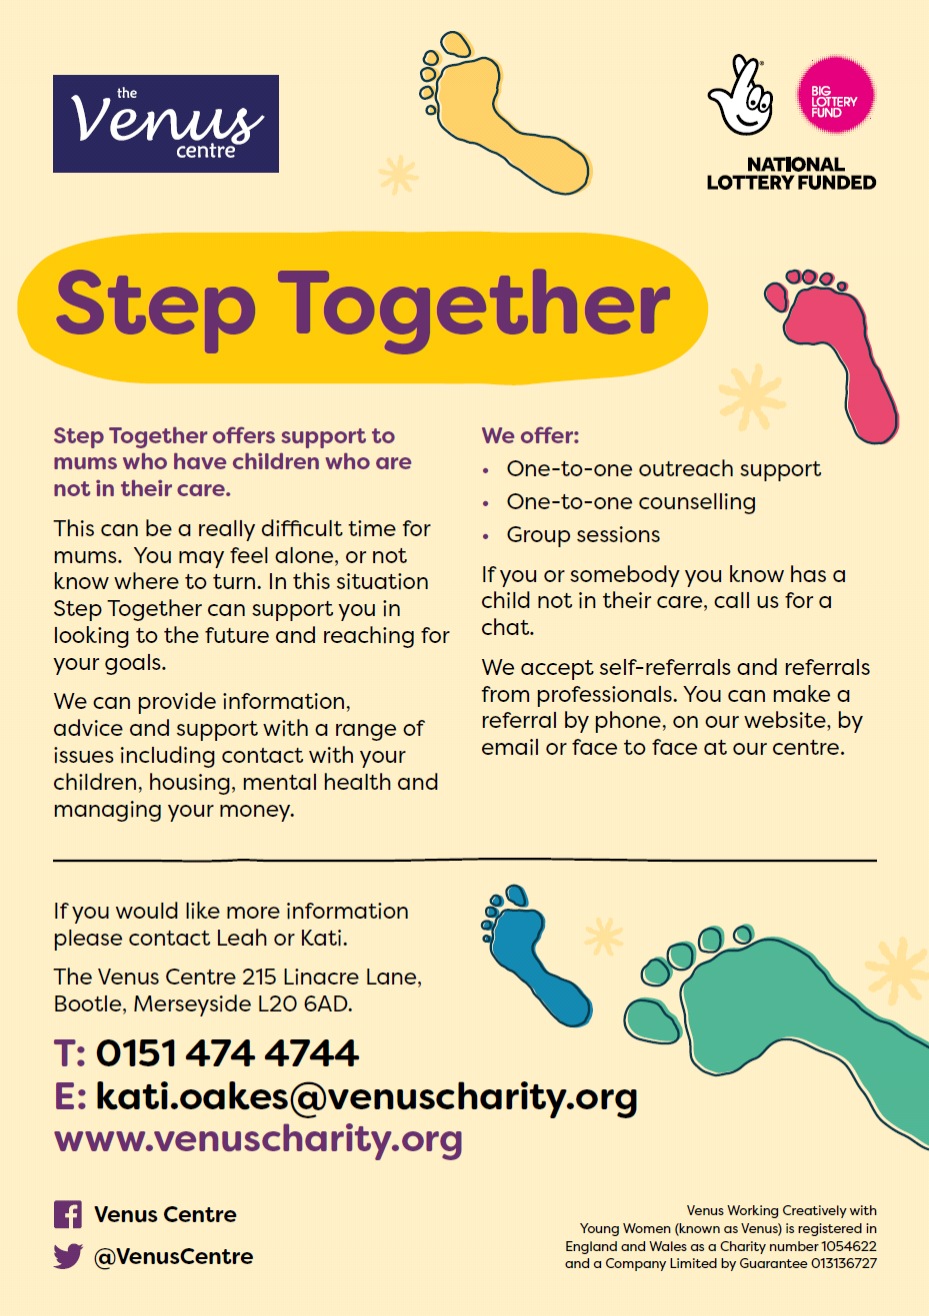 Step Together Event - Venus